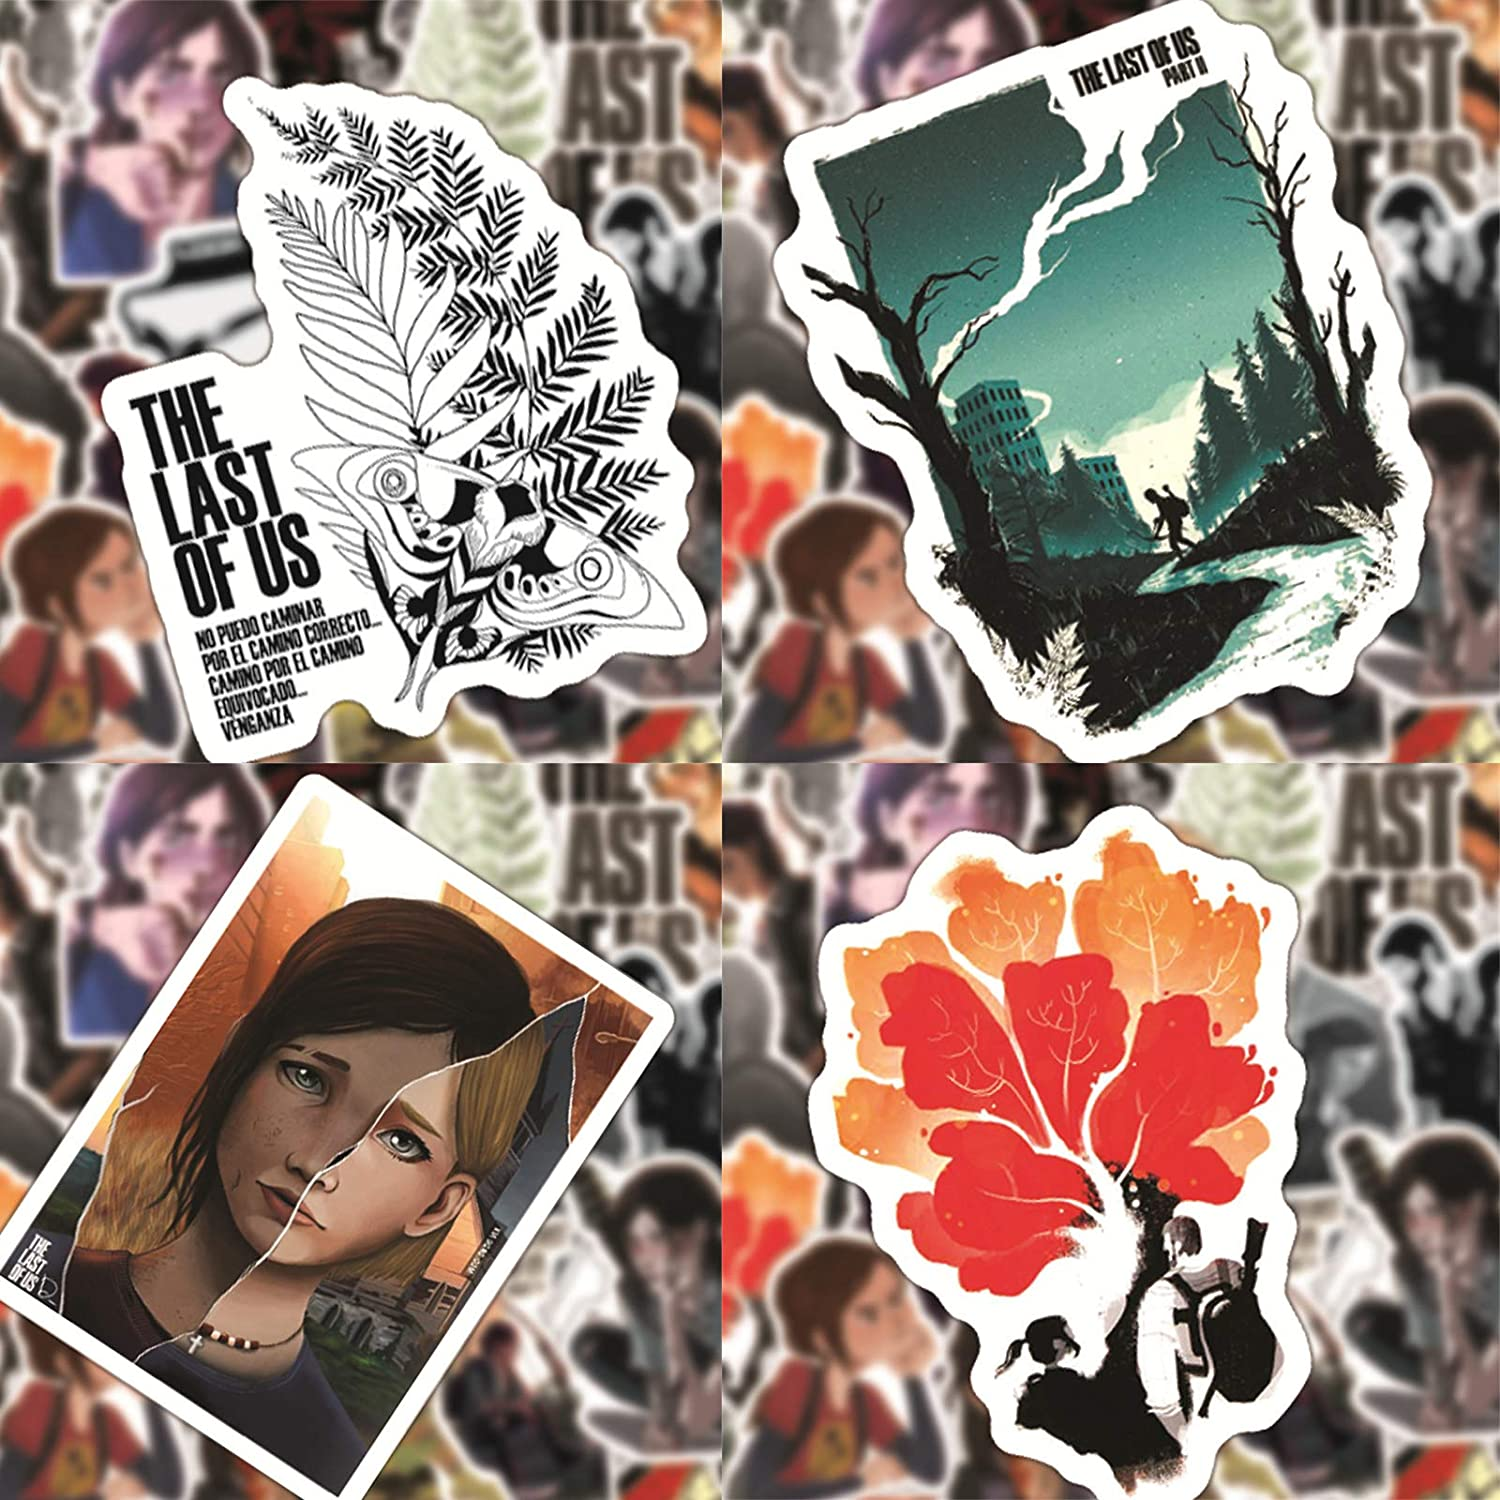 Kilmila The Last of US 02 Stickers 50Pcs (with Logo The Last of us Keychain Gifts)Cute Stickers Vinyl Skateboard Guitar Travel Case Sticker Door Laptop Luggage Car Bike Bicycle Stickers